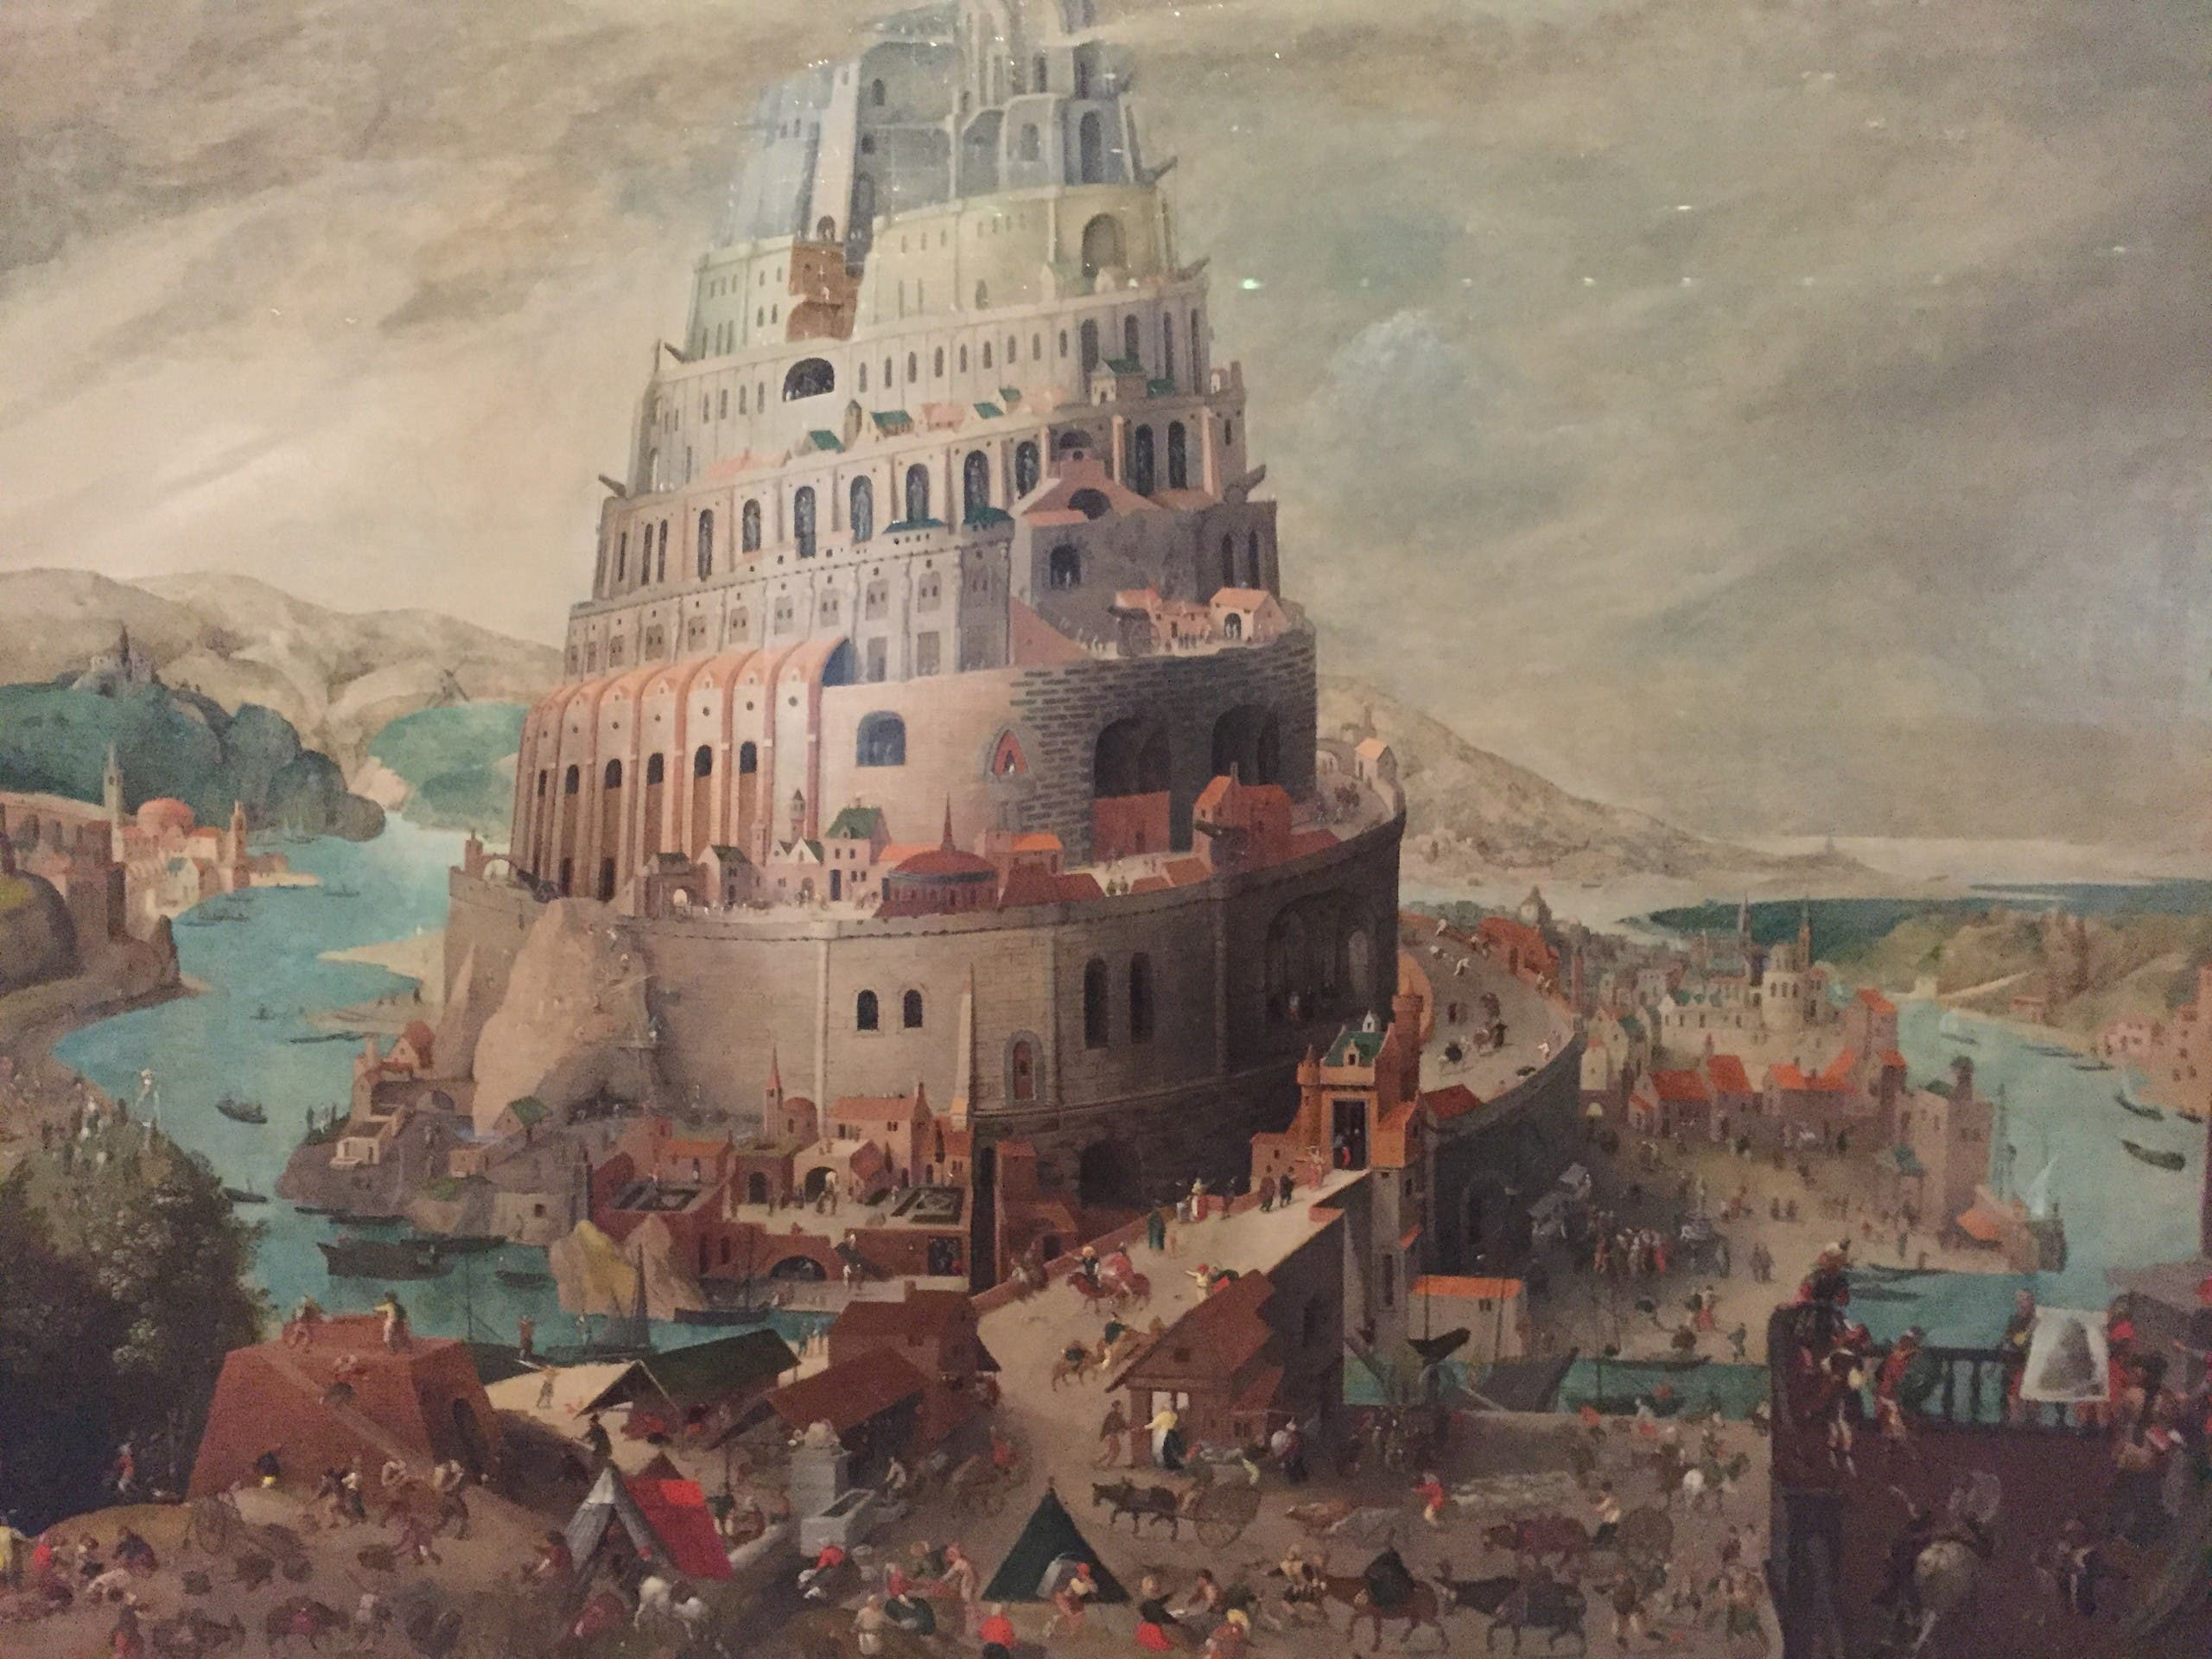 Tower of Babel oil painting at the Louvre Abu Dhabi. (Supplied)